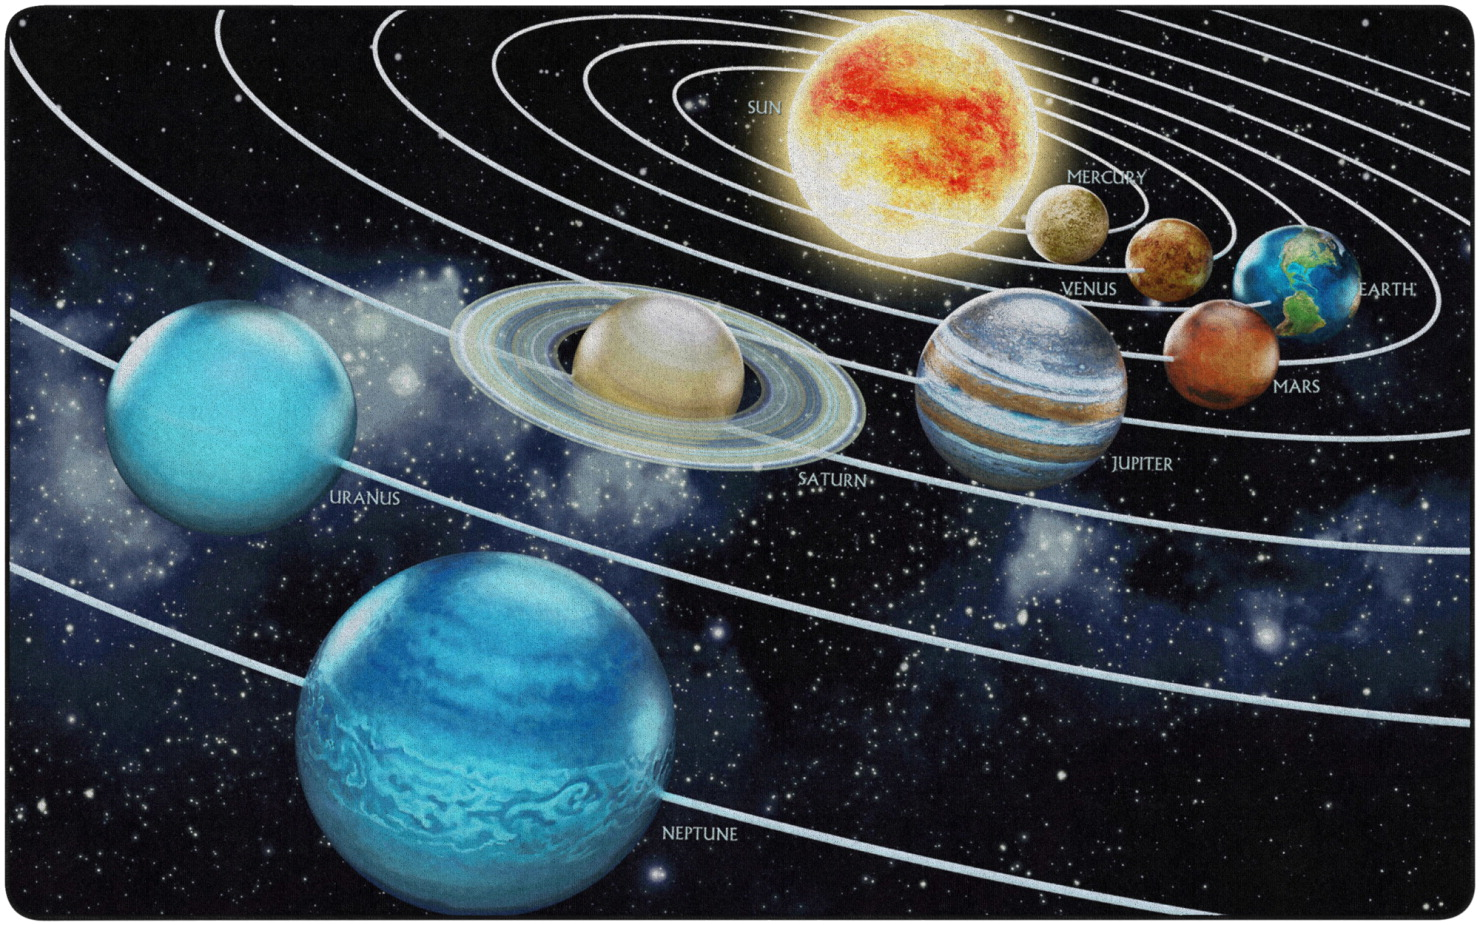 Flagship Carpets Traveling the Solar System Carpet, 6 Feet x 8 Feet 4 Inches, Rectangle